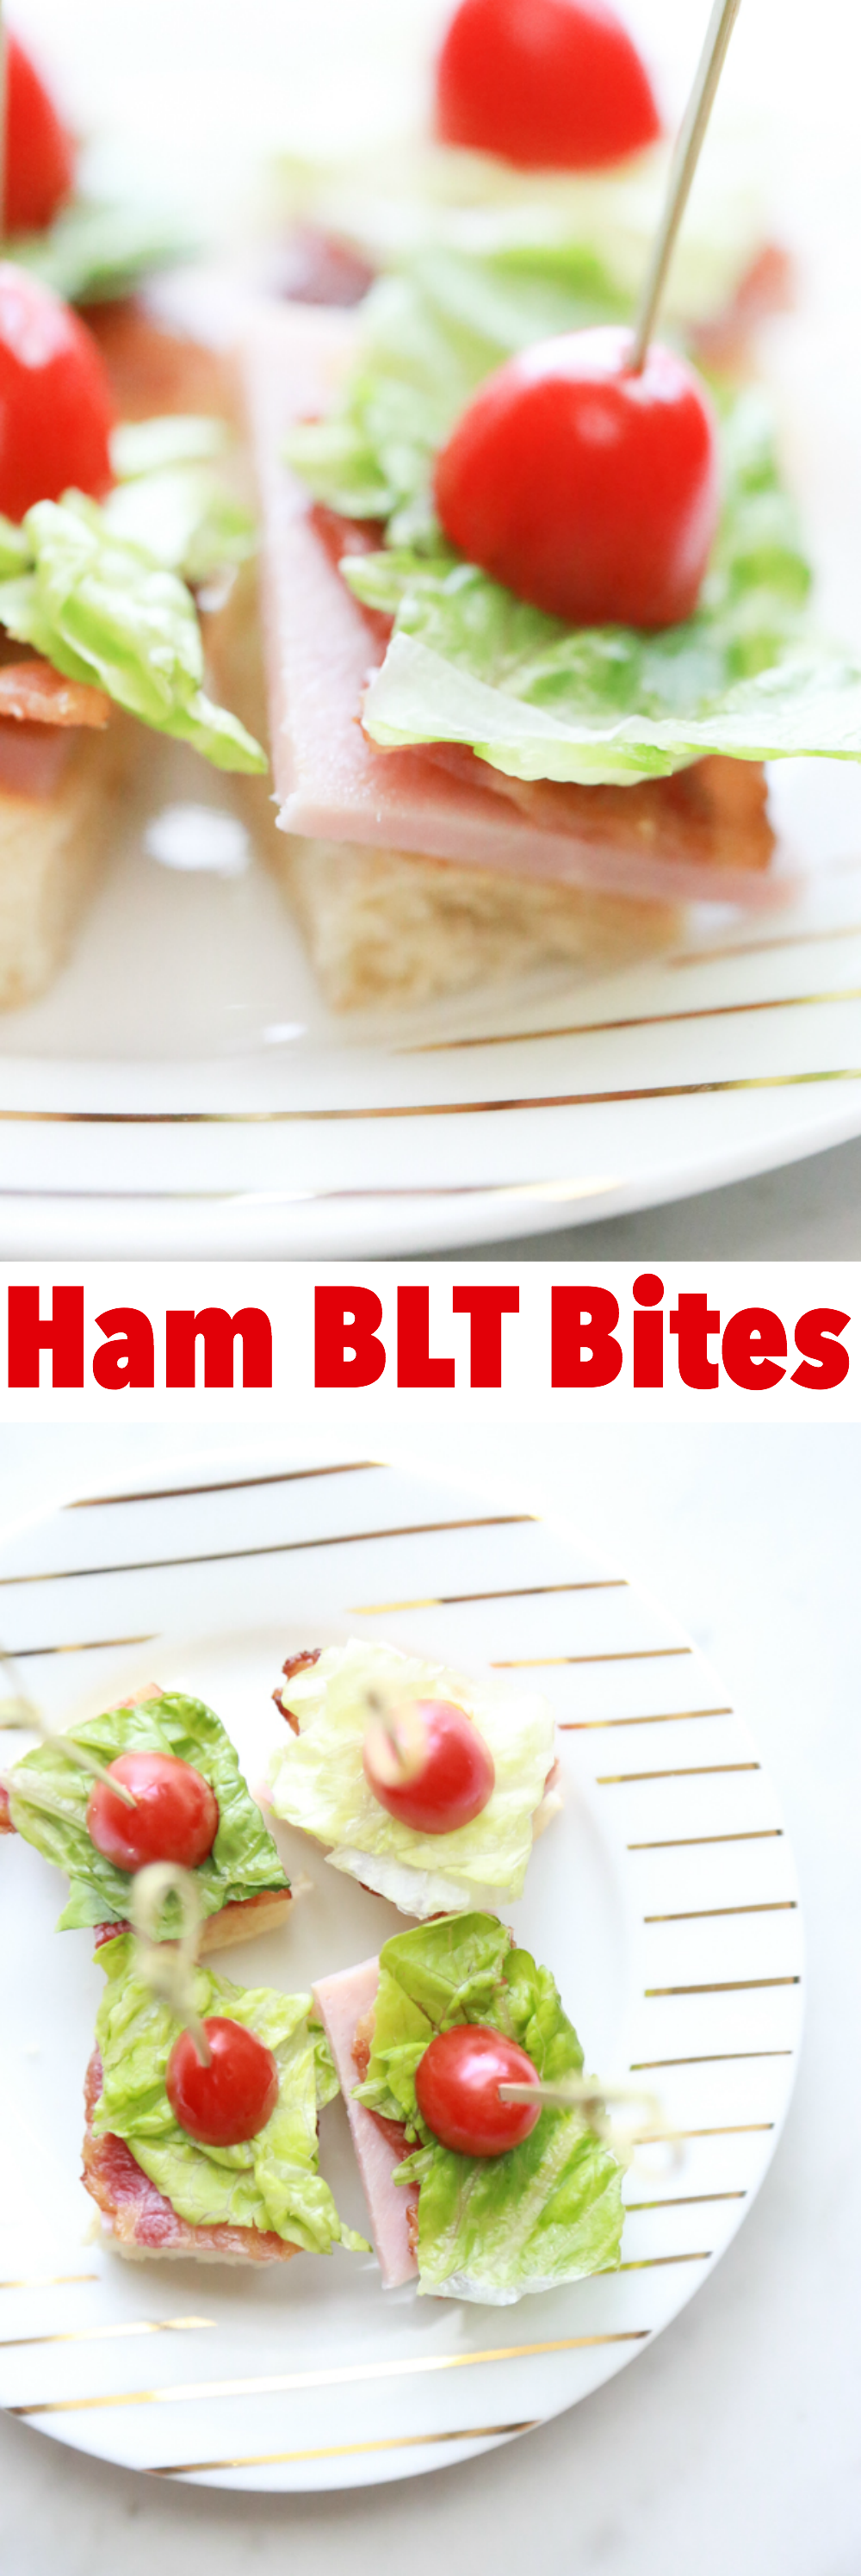 Whether your celebrating your favorite team or your favorite person, these Ham BLT Bites are perfect for any occasion.